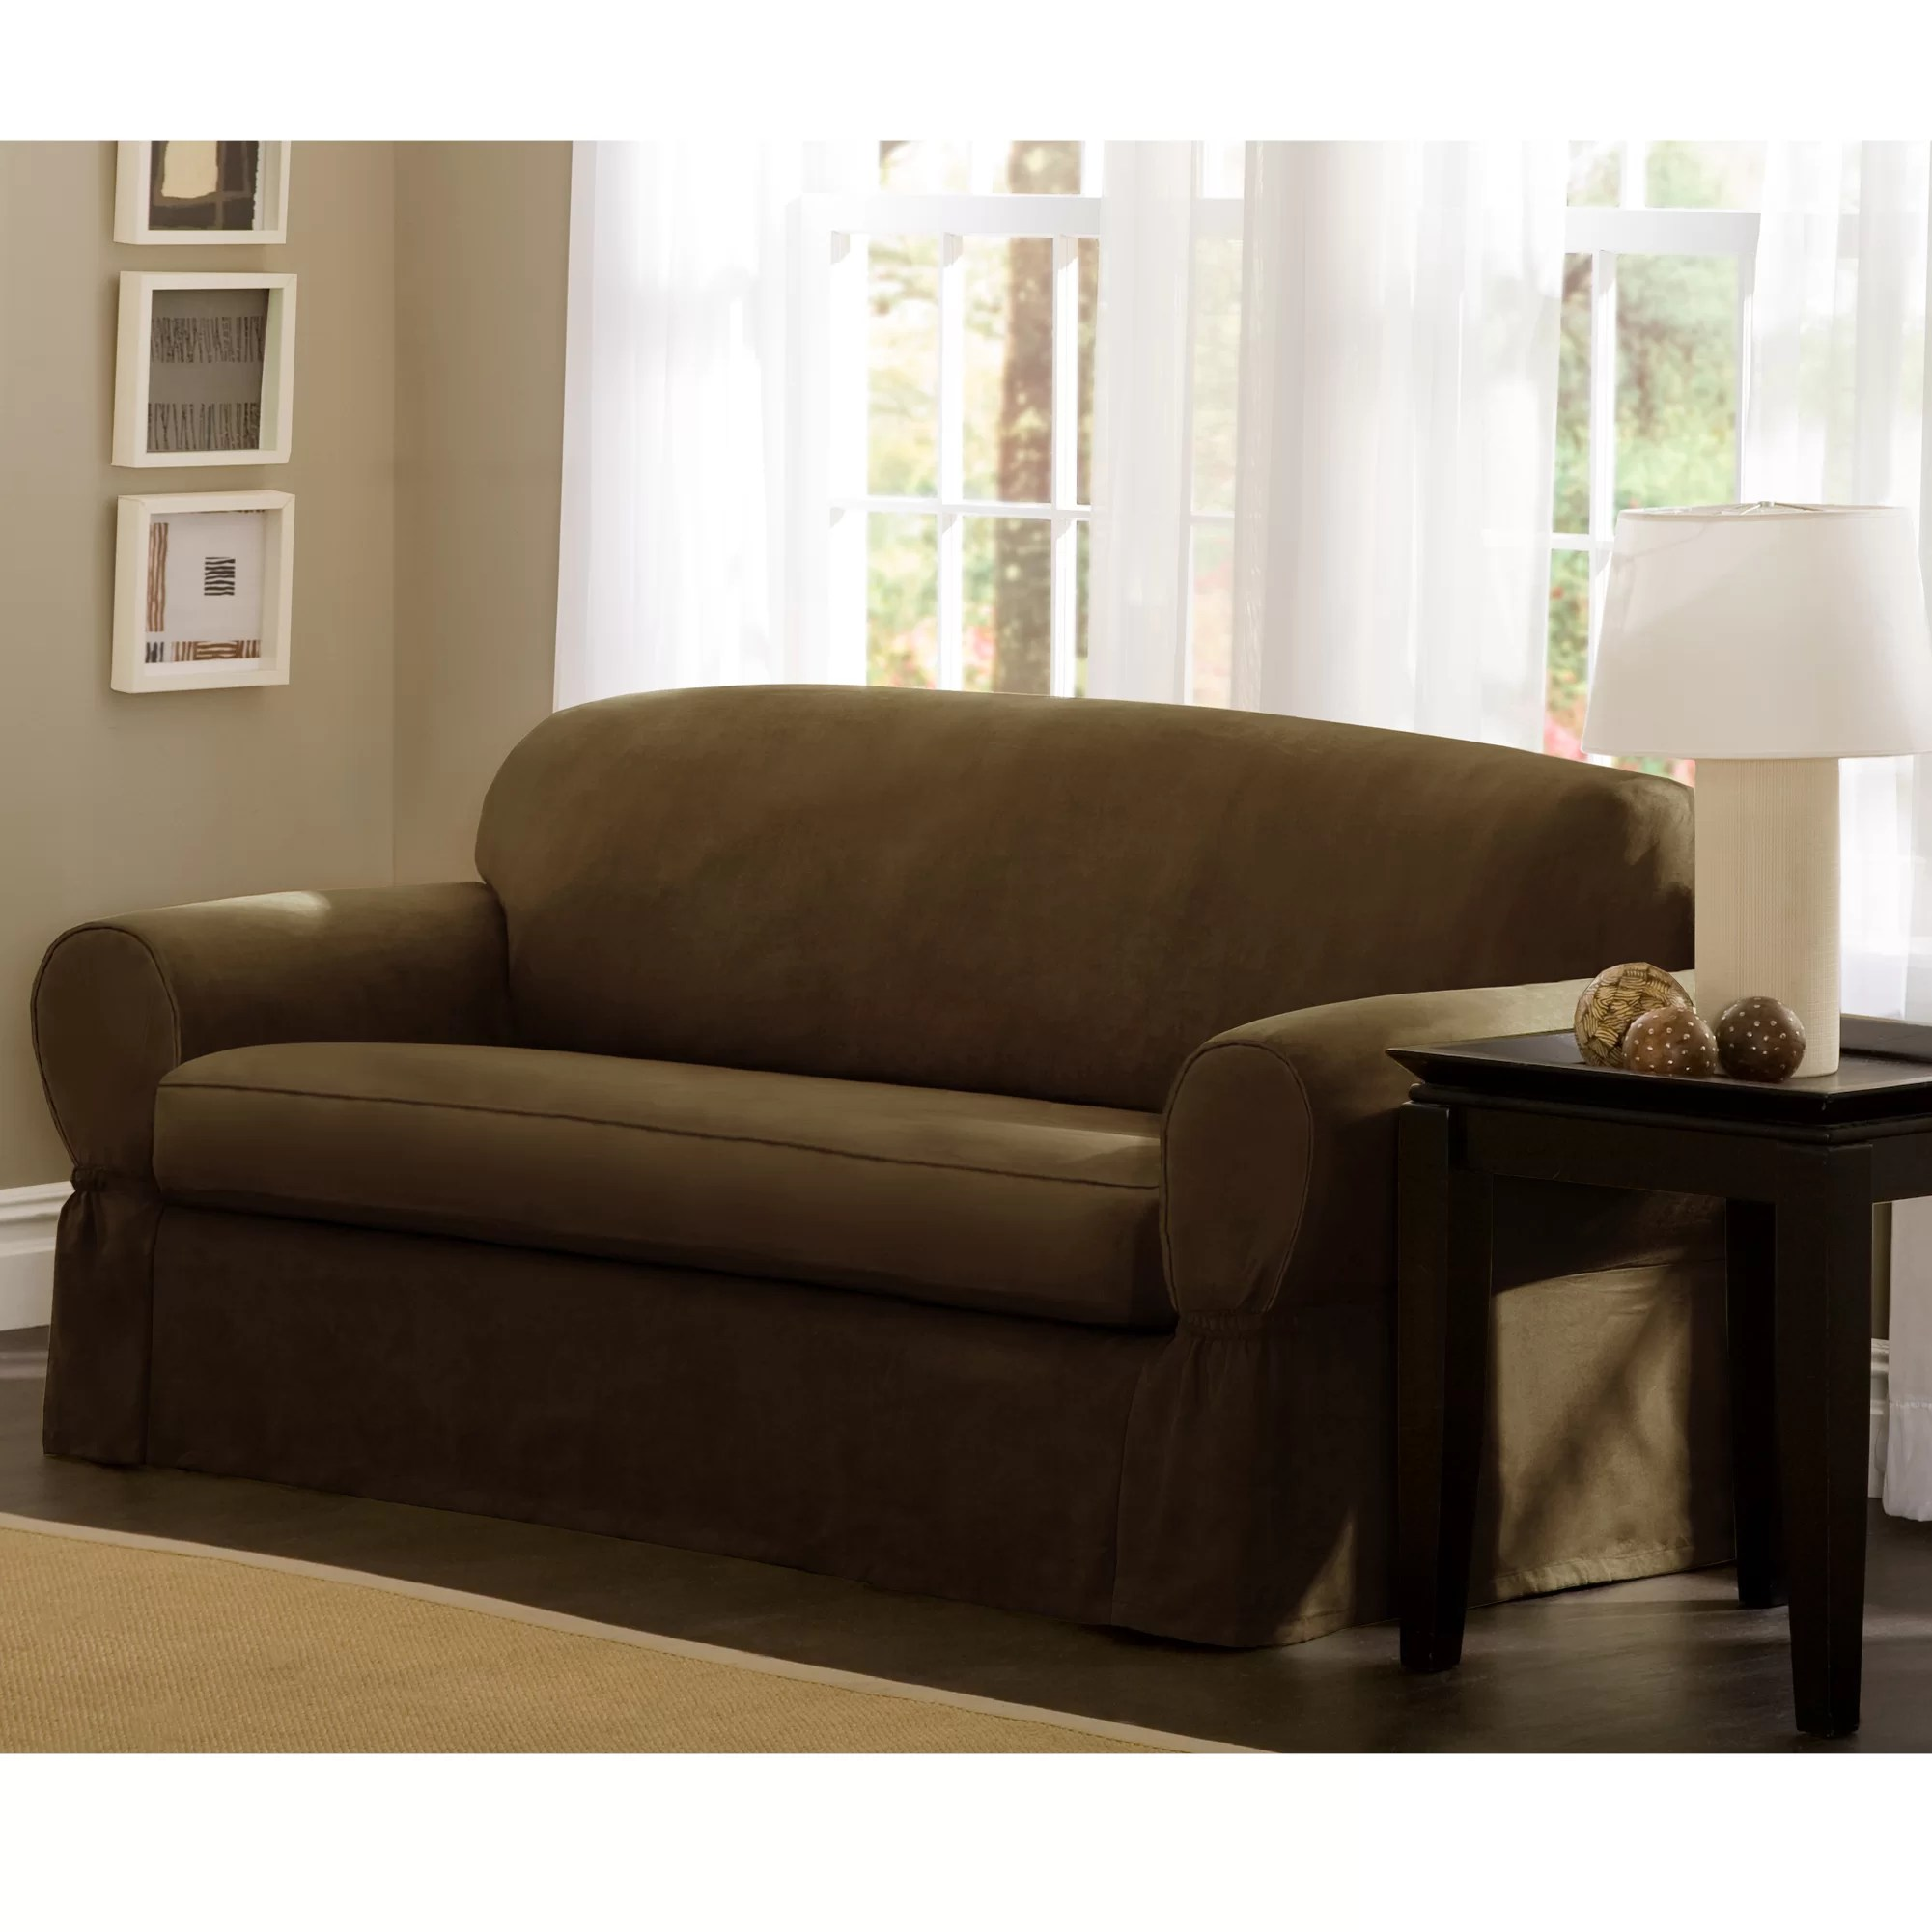 Faux Leather Sofa In A Box Box Cushion Sofa Slipcover